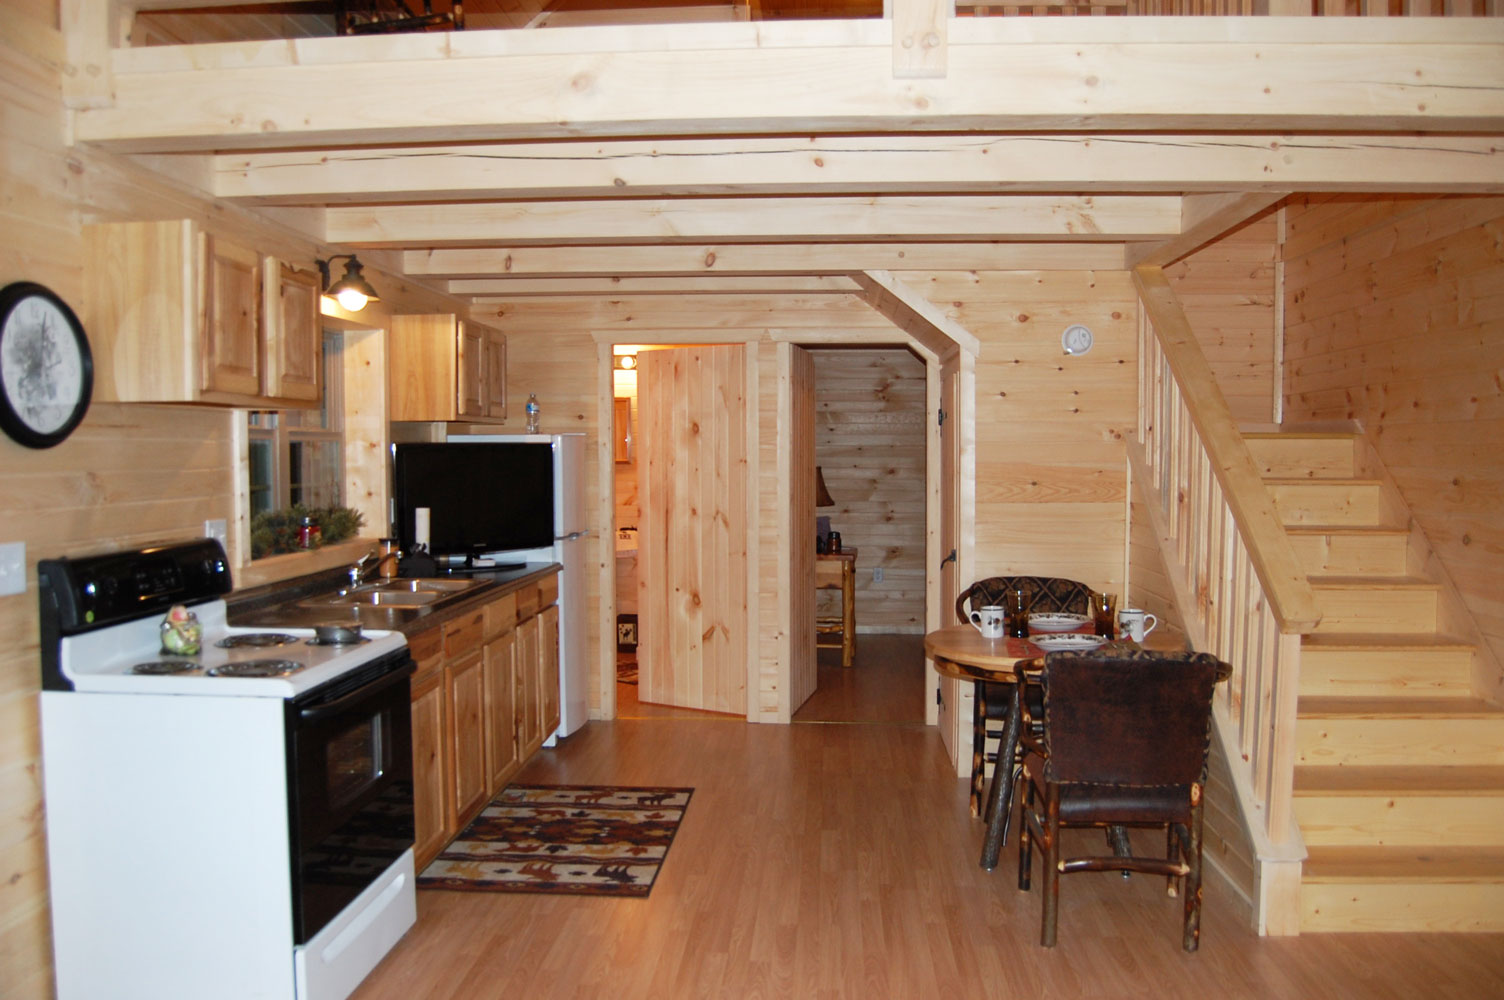 Getaway Cabins on Interior Deluxe Lofted Barn Cabin Floor Plans